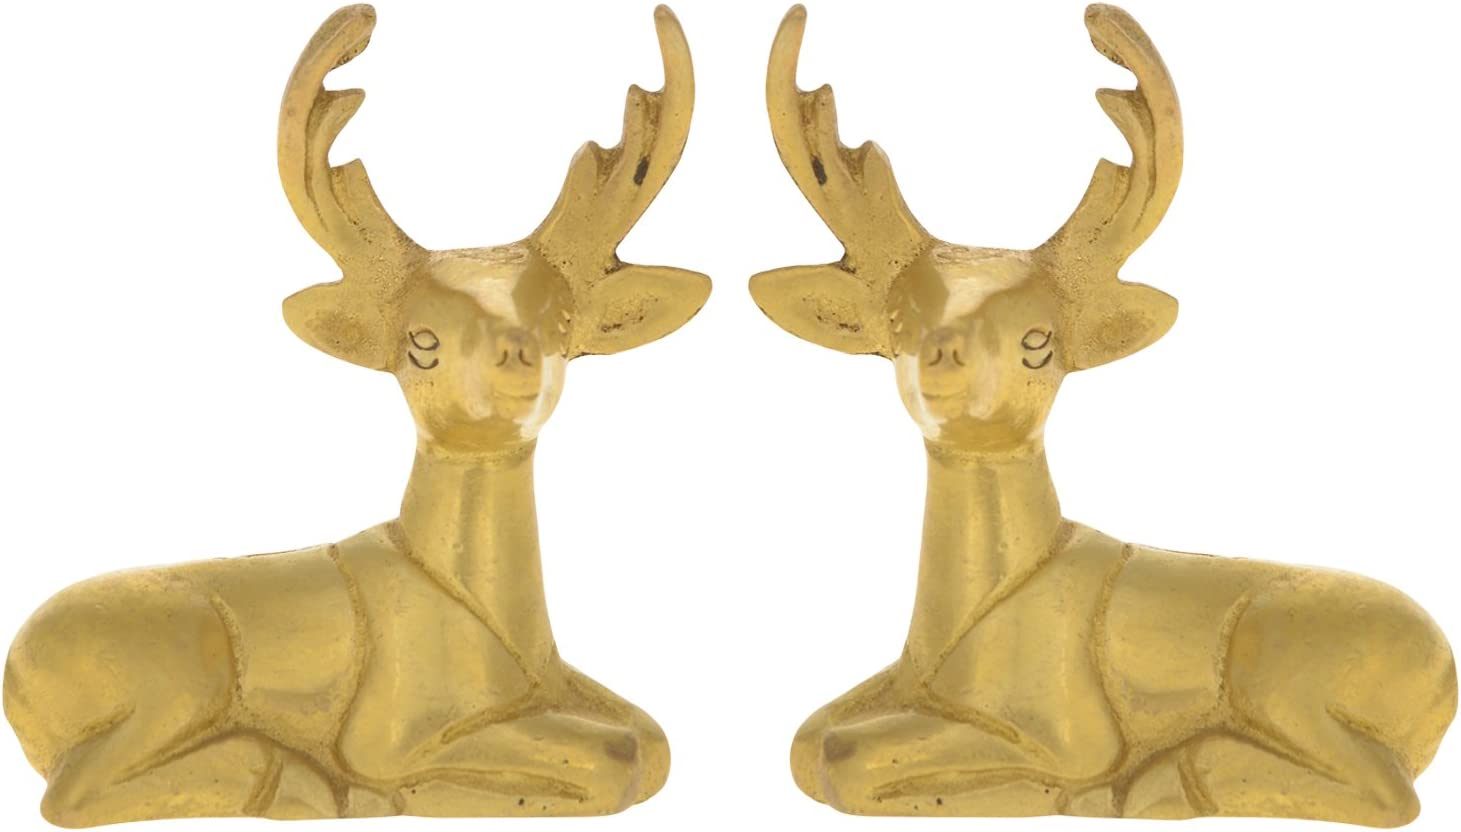 ITOS365 Showpiece Items for Home Decor Decoration Made of Brass Deer Statue in Pair Gift Ideas, Set of 2